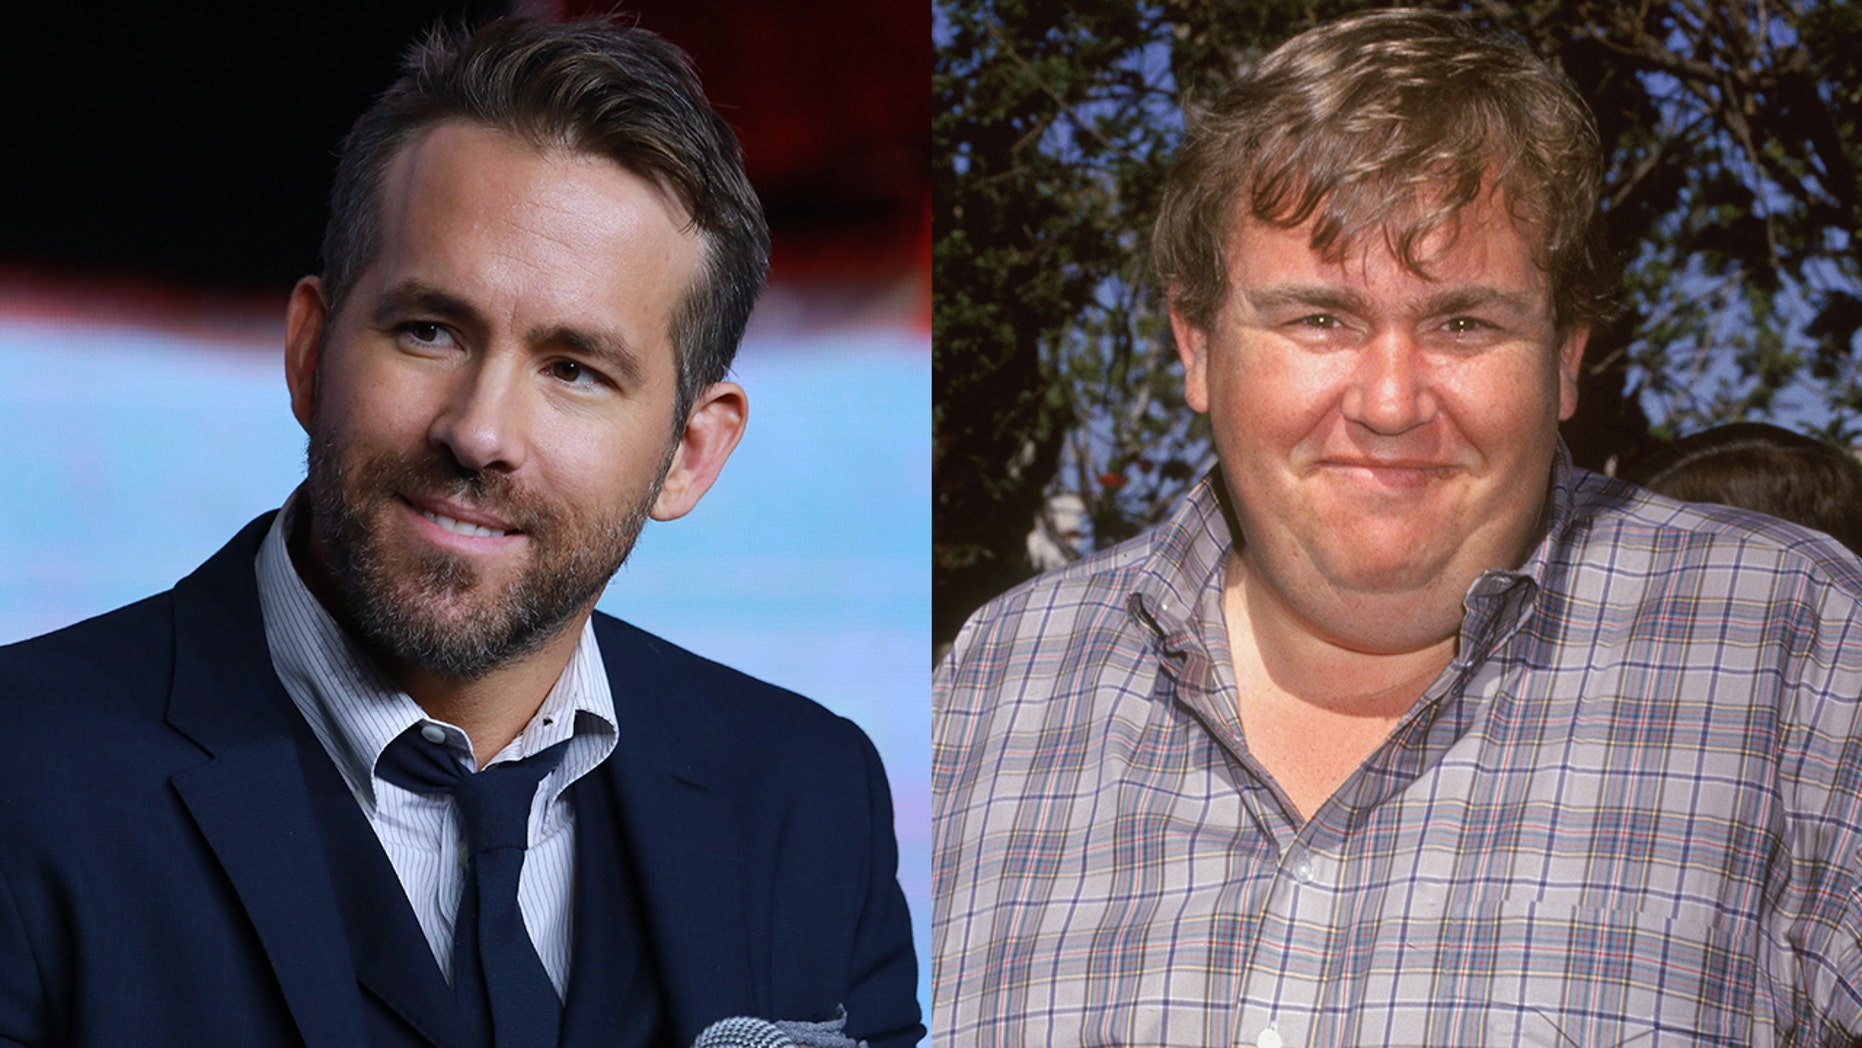 Ryan Reynolds shared a tribute to the late John Candy on social media.